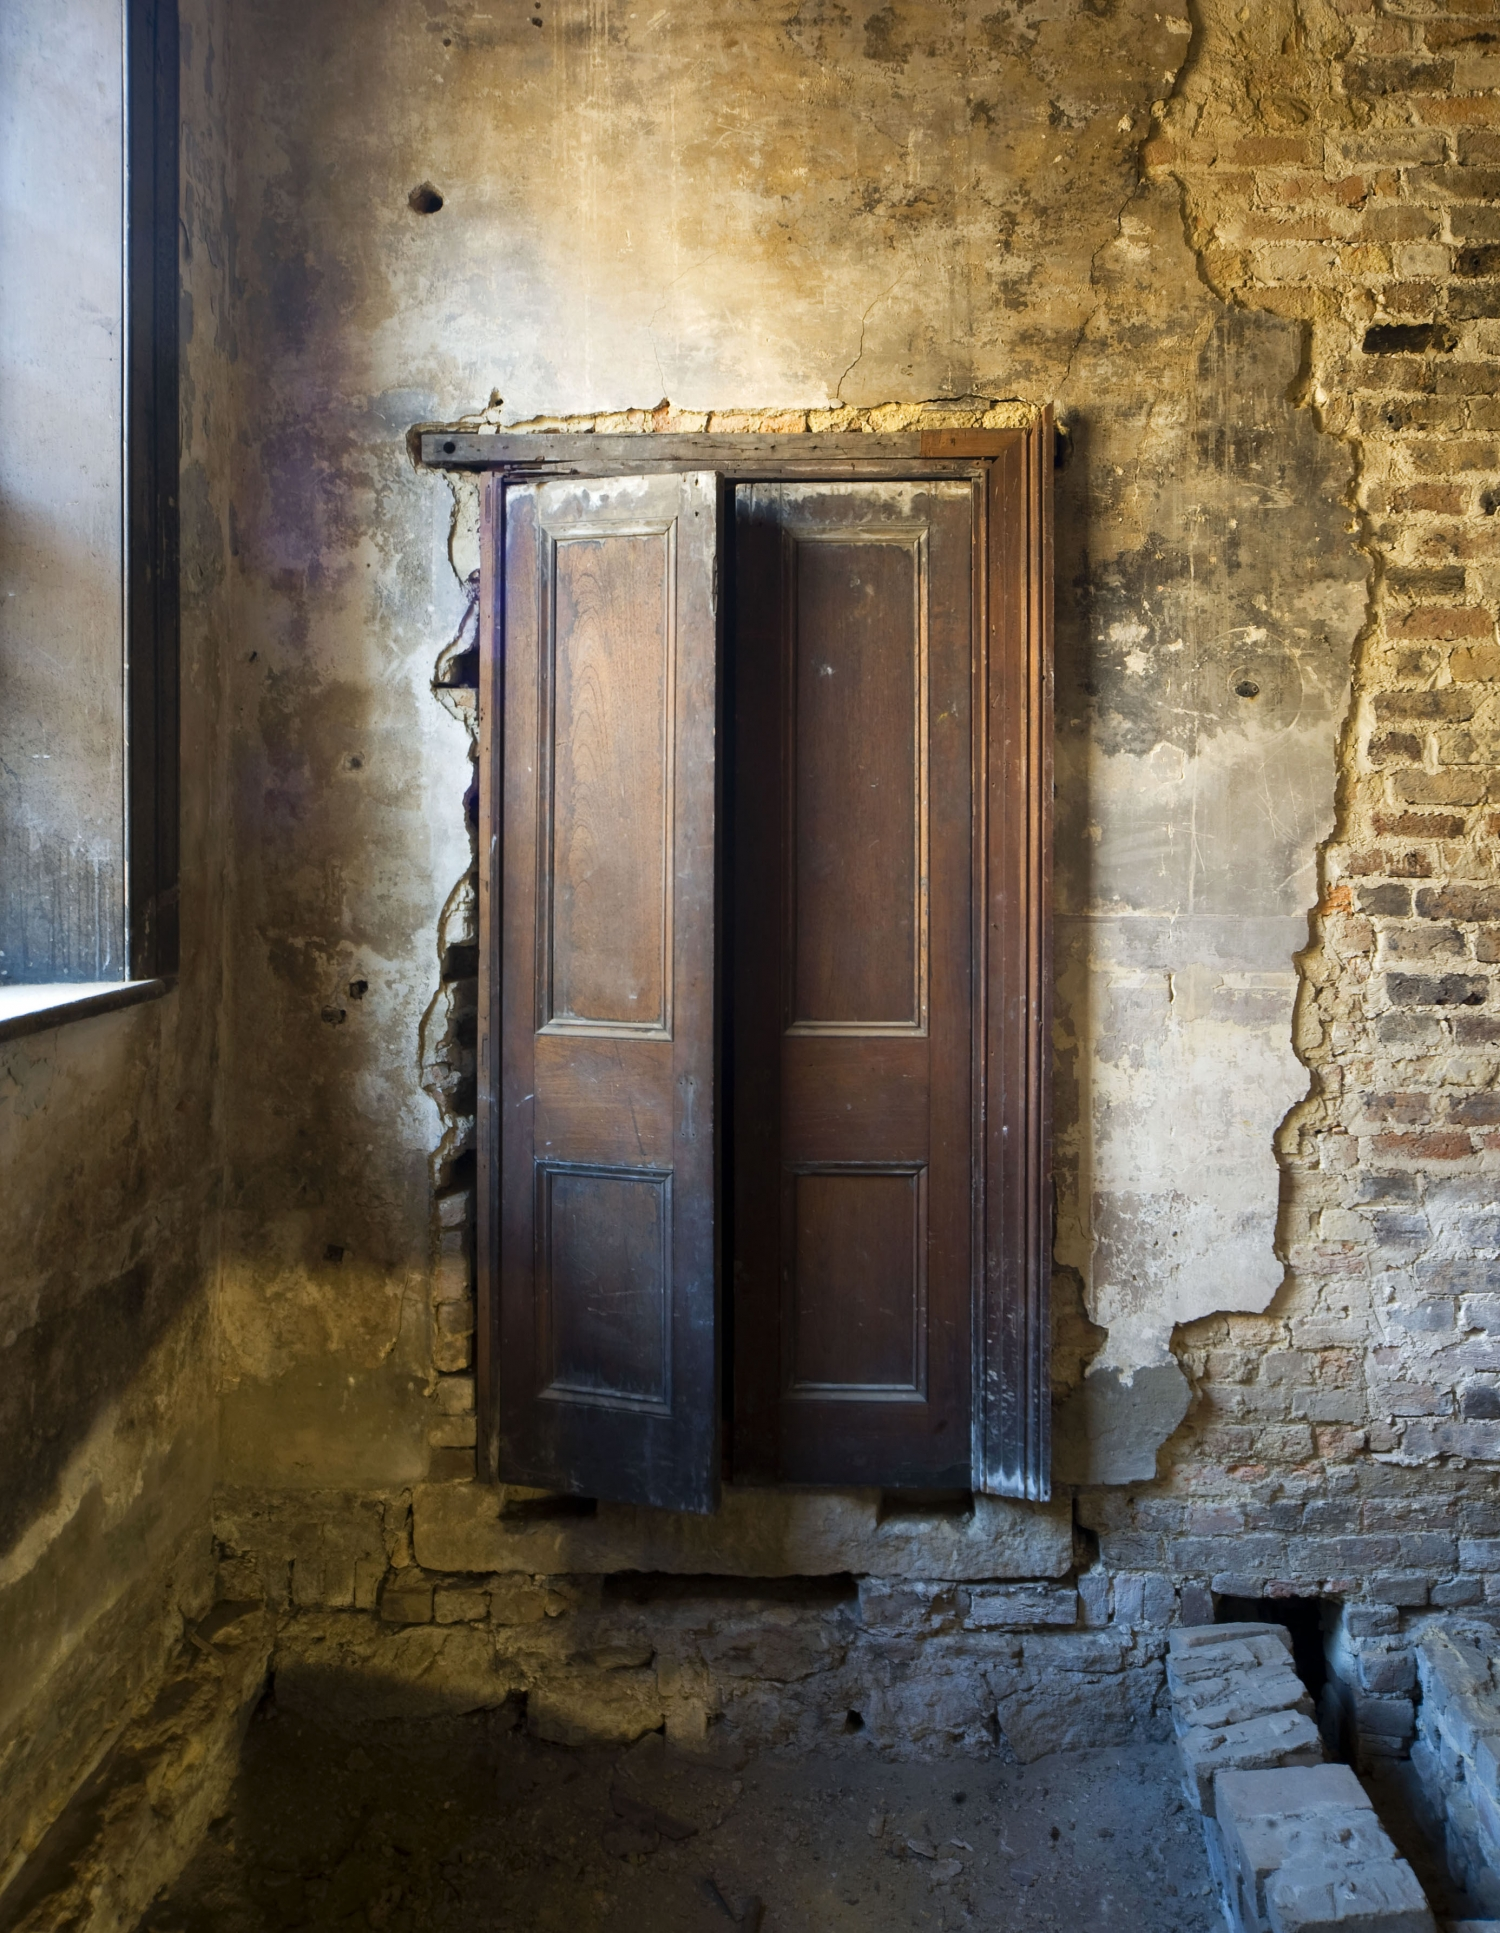 Old double doors preserved in an original and deteriorated brick wall with arched window to the left, exposed earth below and ceiling boards above.